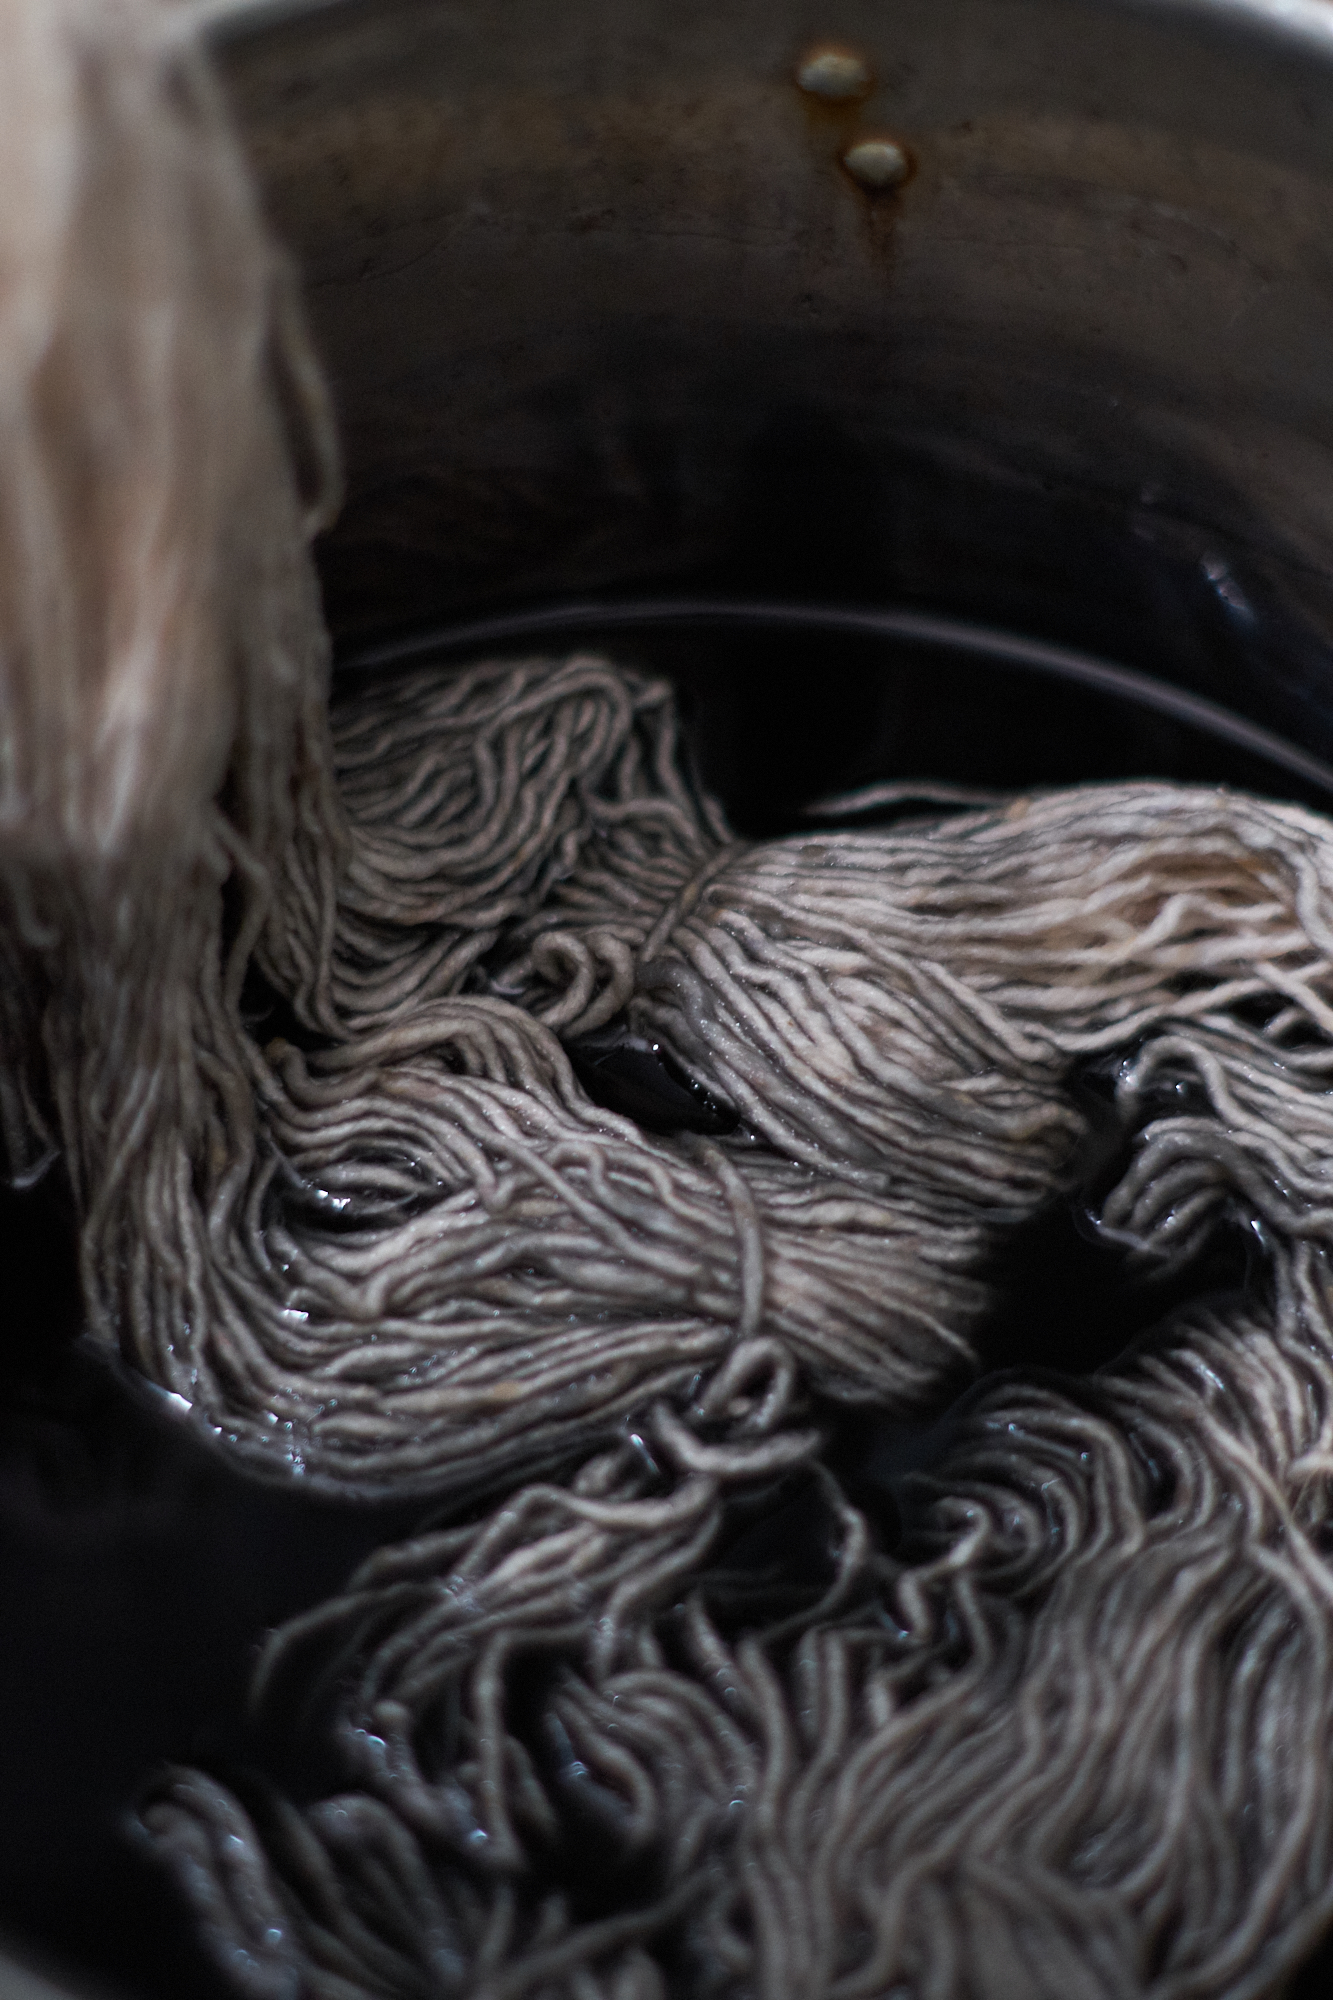 Wool in logwood dye pot.